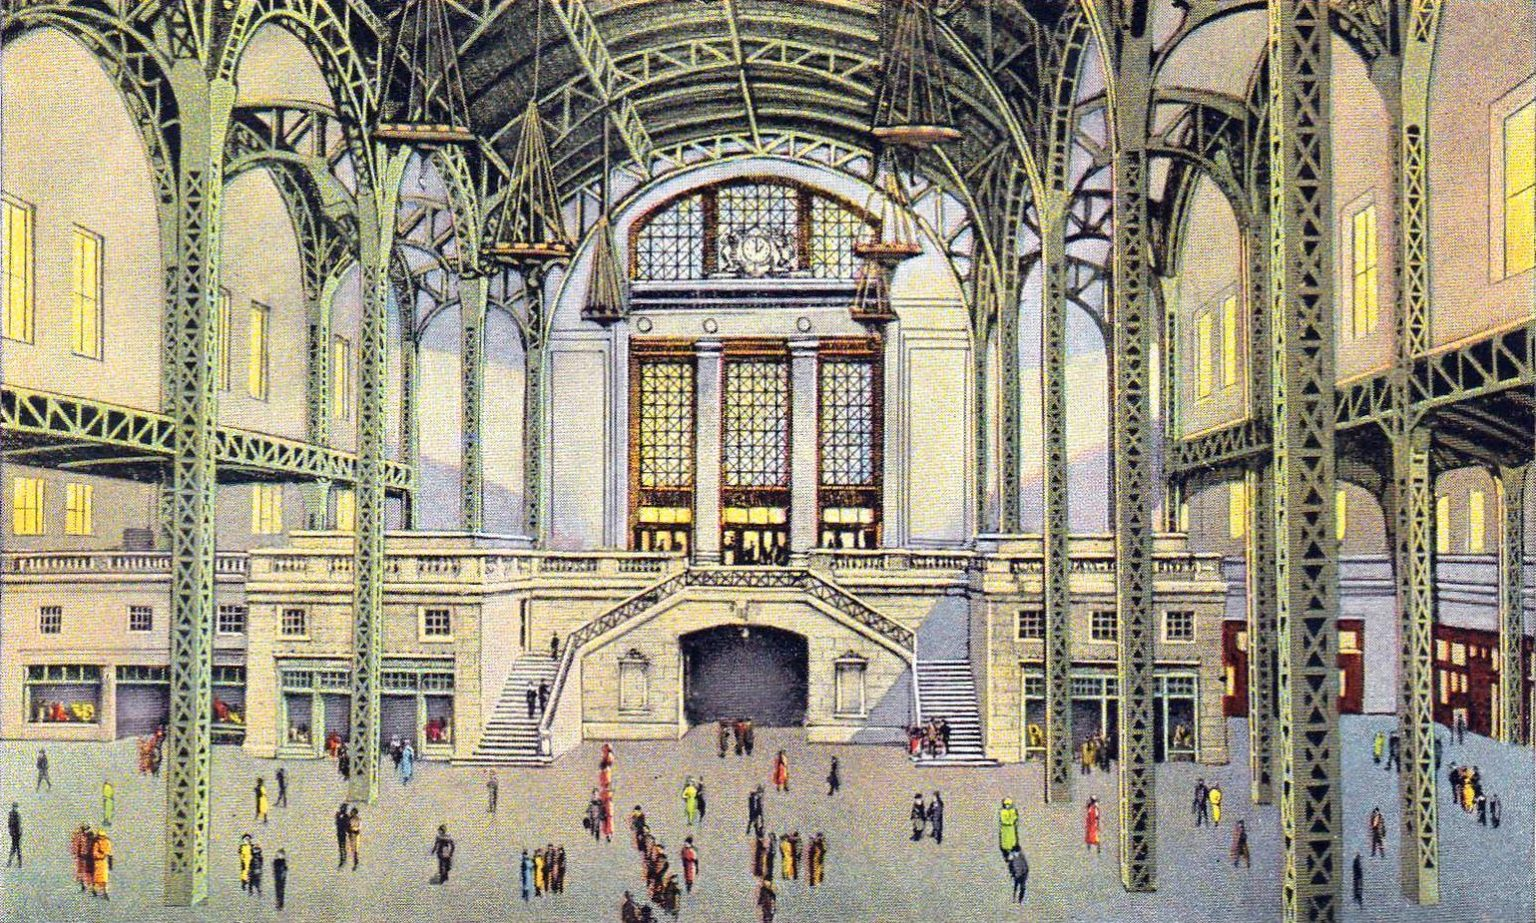 1920s Union Station train in Chicago Illinois